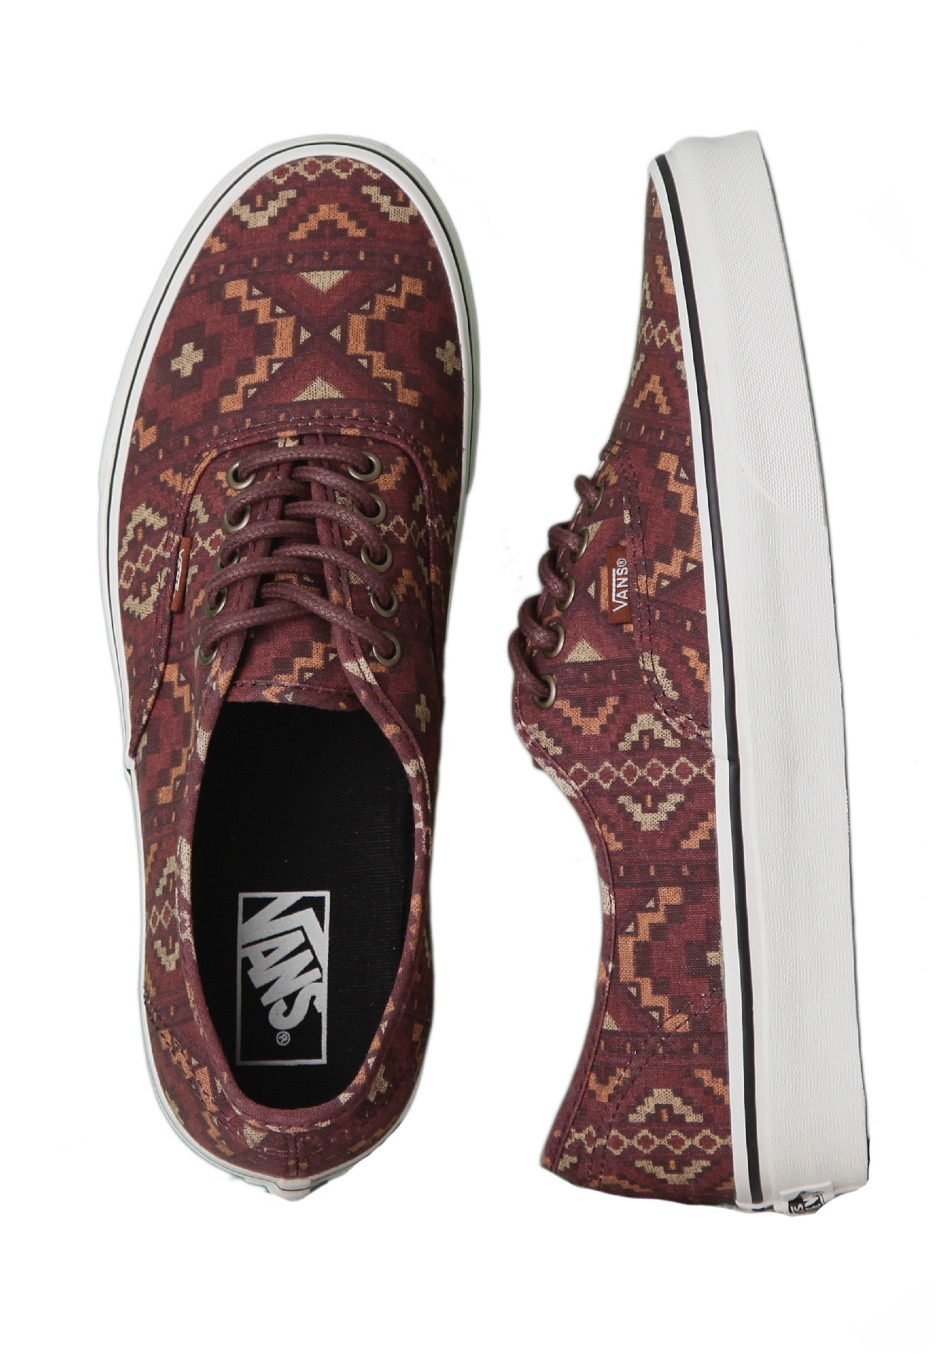 f9985c65a8e0be Vans - Authentic Tribe Rug Red Clay - Shoes - Impericon.com US